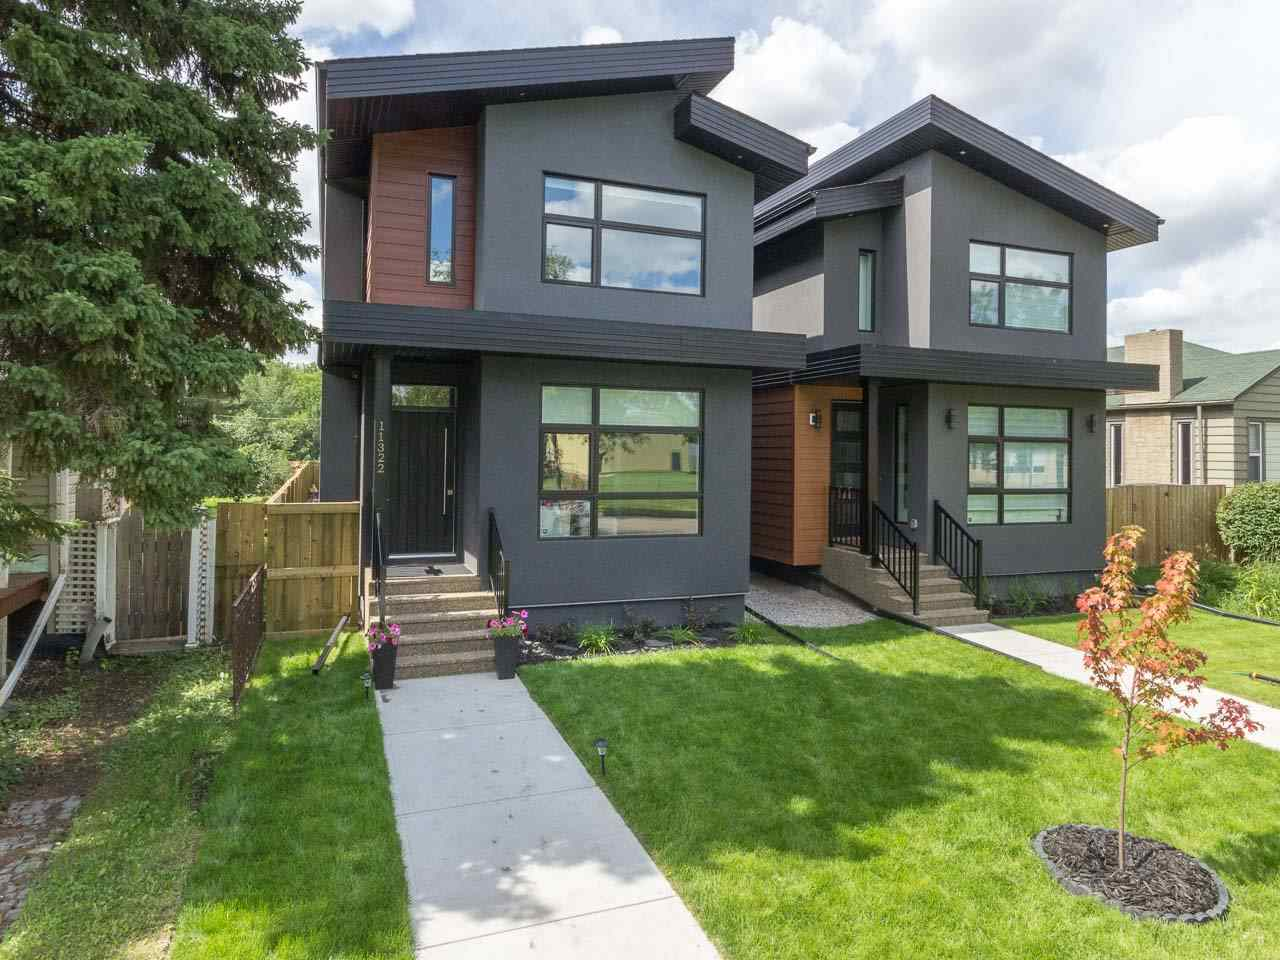 Main Photo: 11322 128 Street in Edmonton: Zone 07 House for sale : MLS® # E4075590